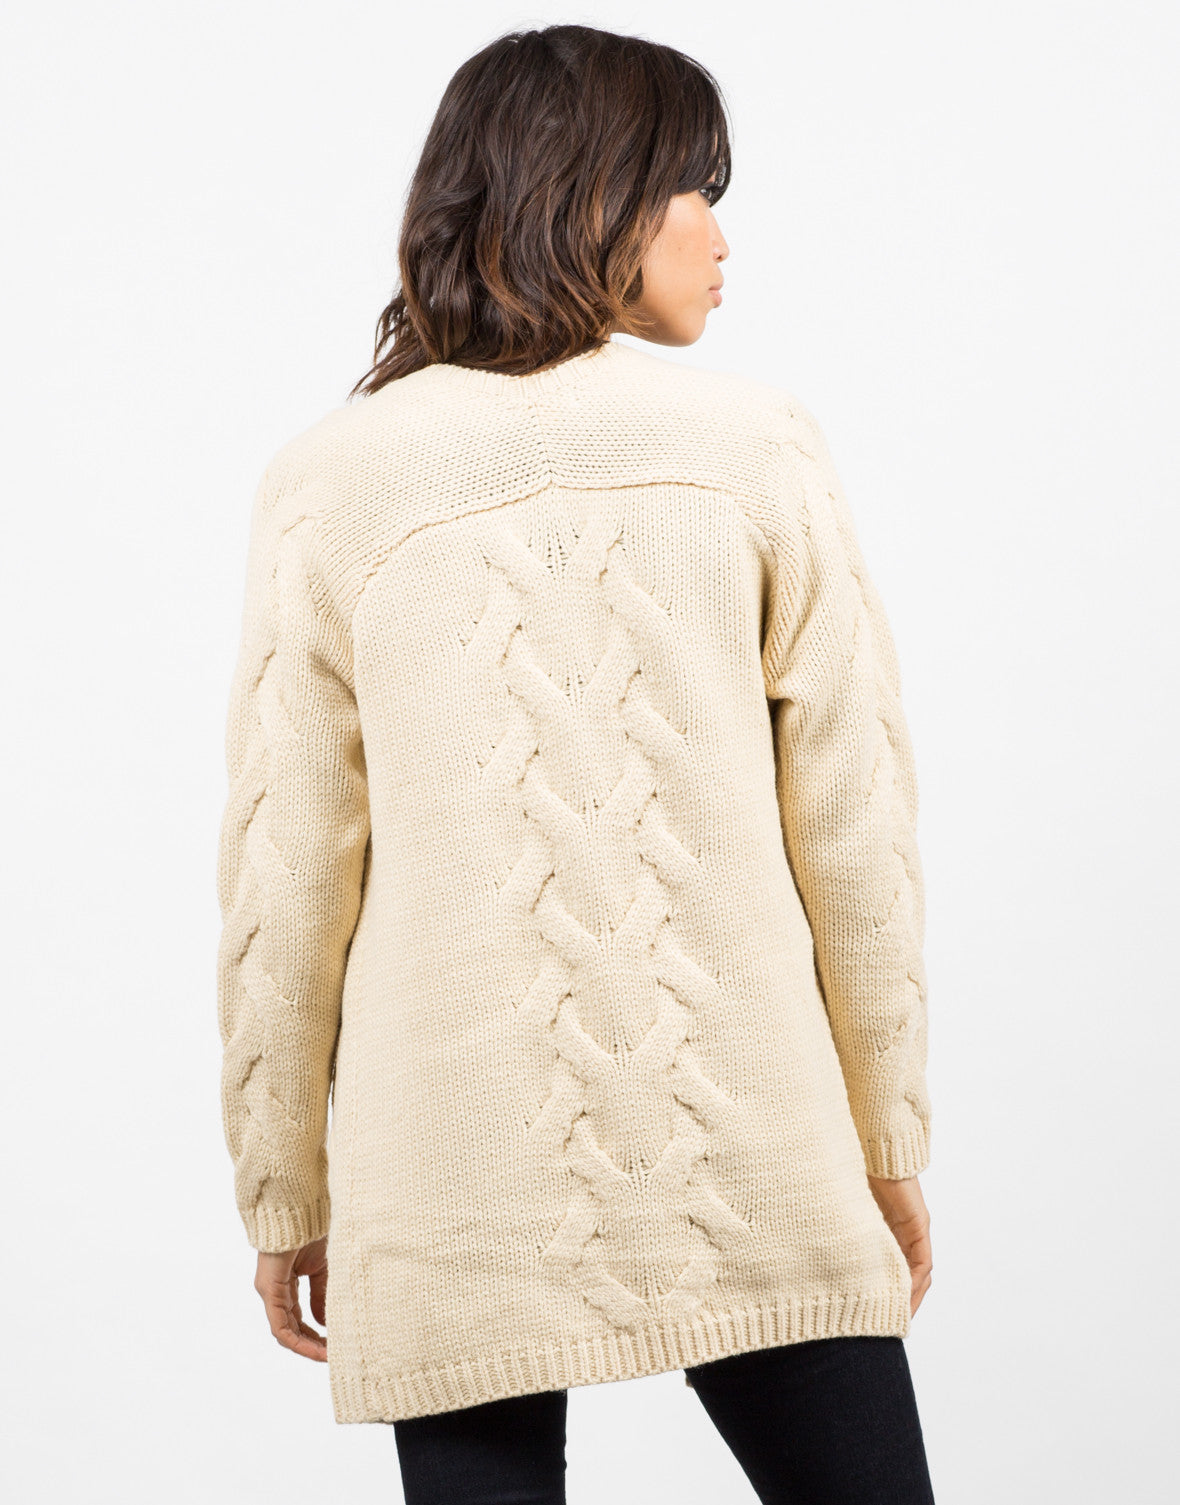 Back View of Chunky Twist Knit Cardigan